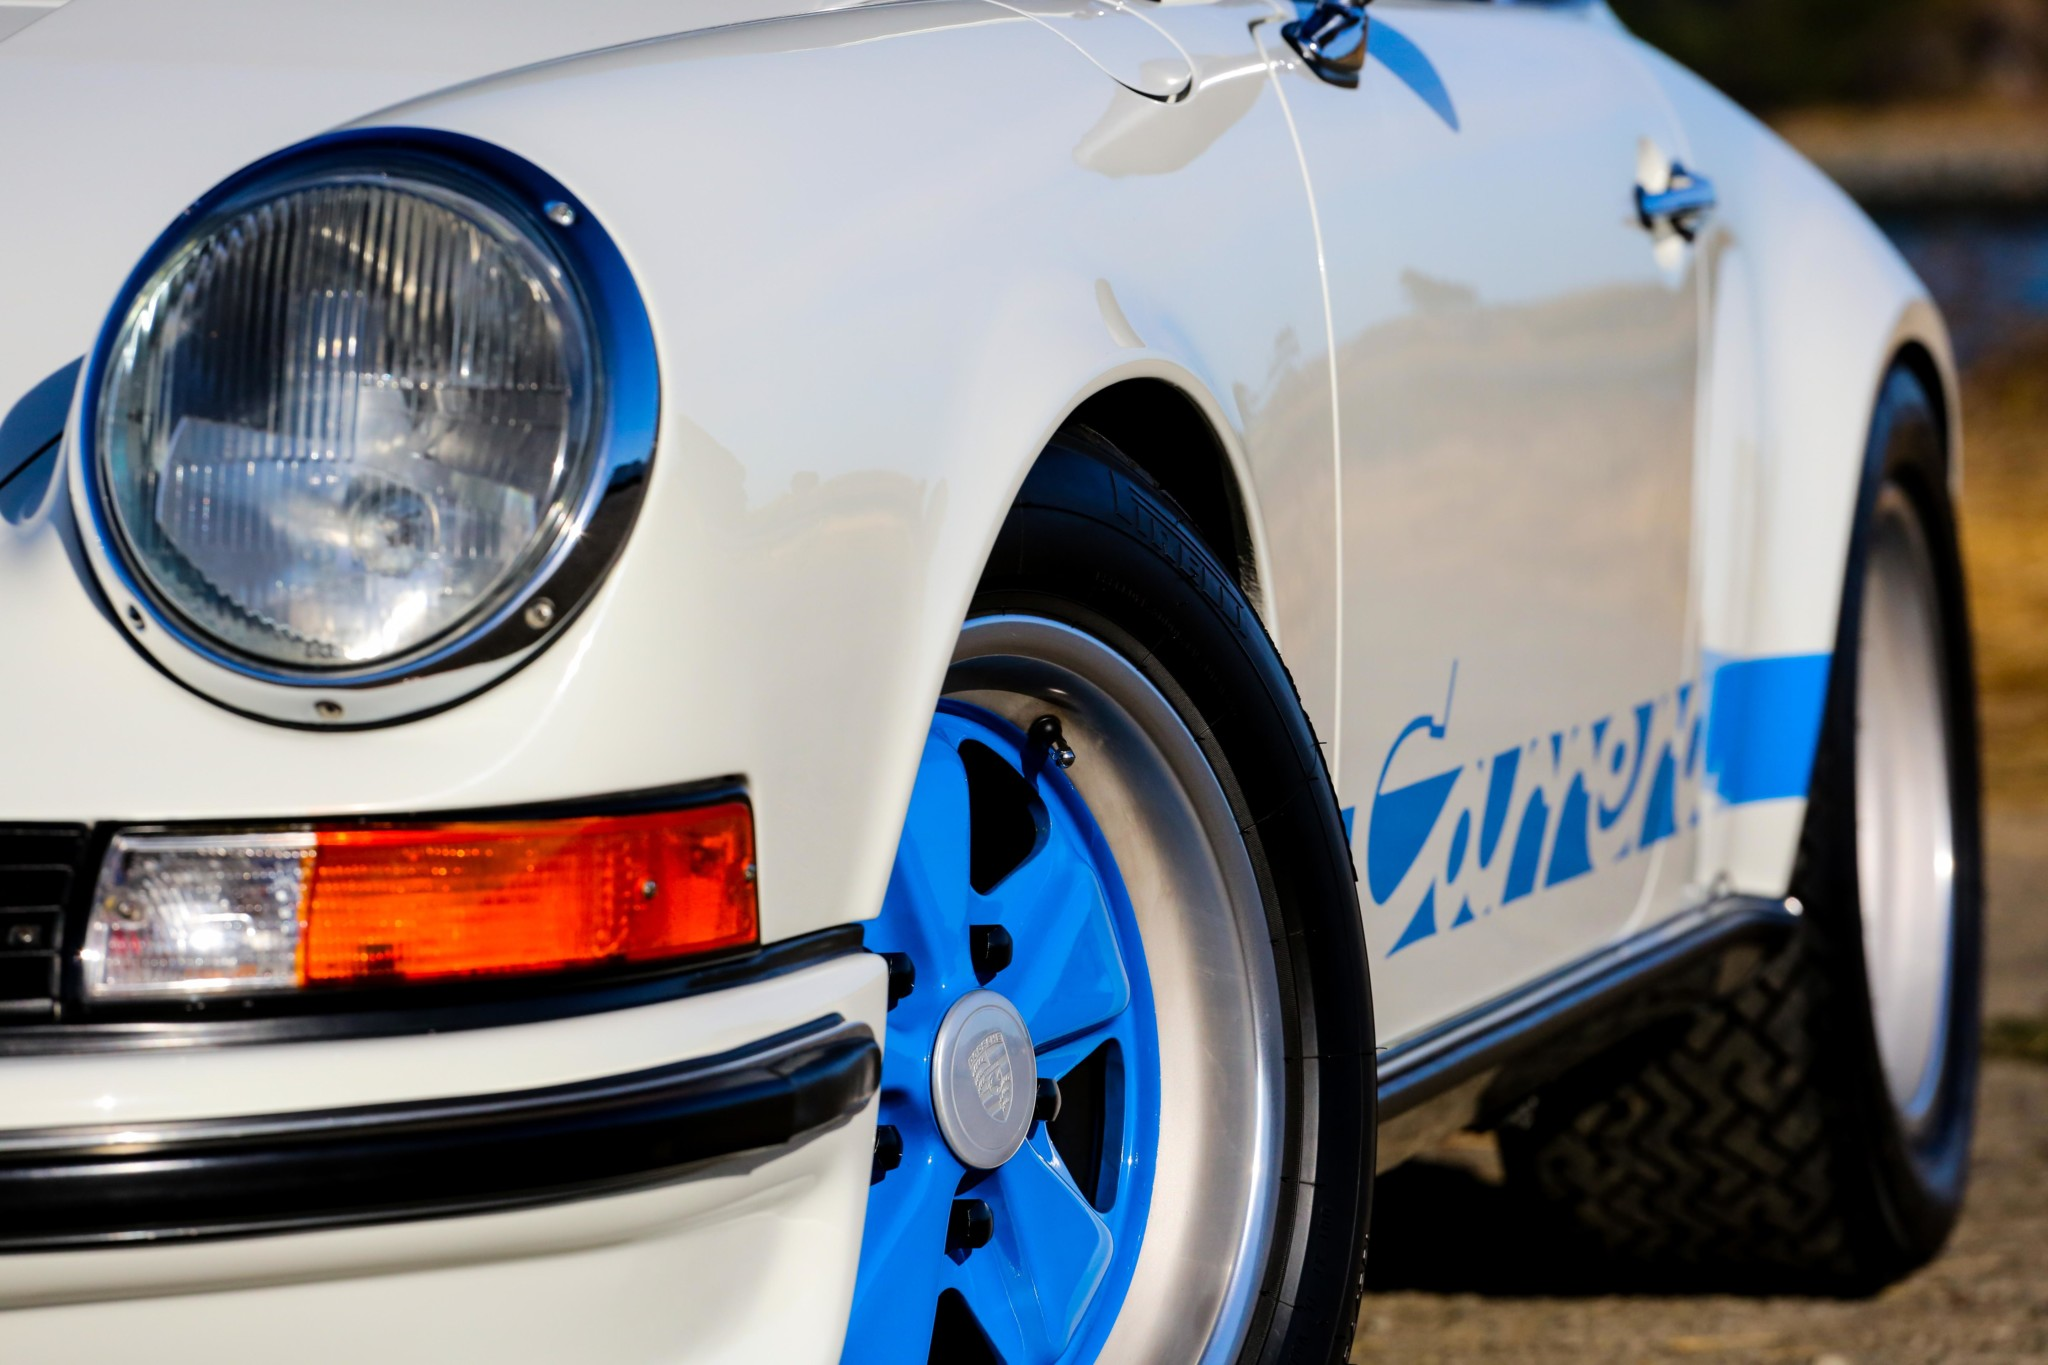 Porsche-911-Carrera-RS-2.7-1973-for-sale-51